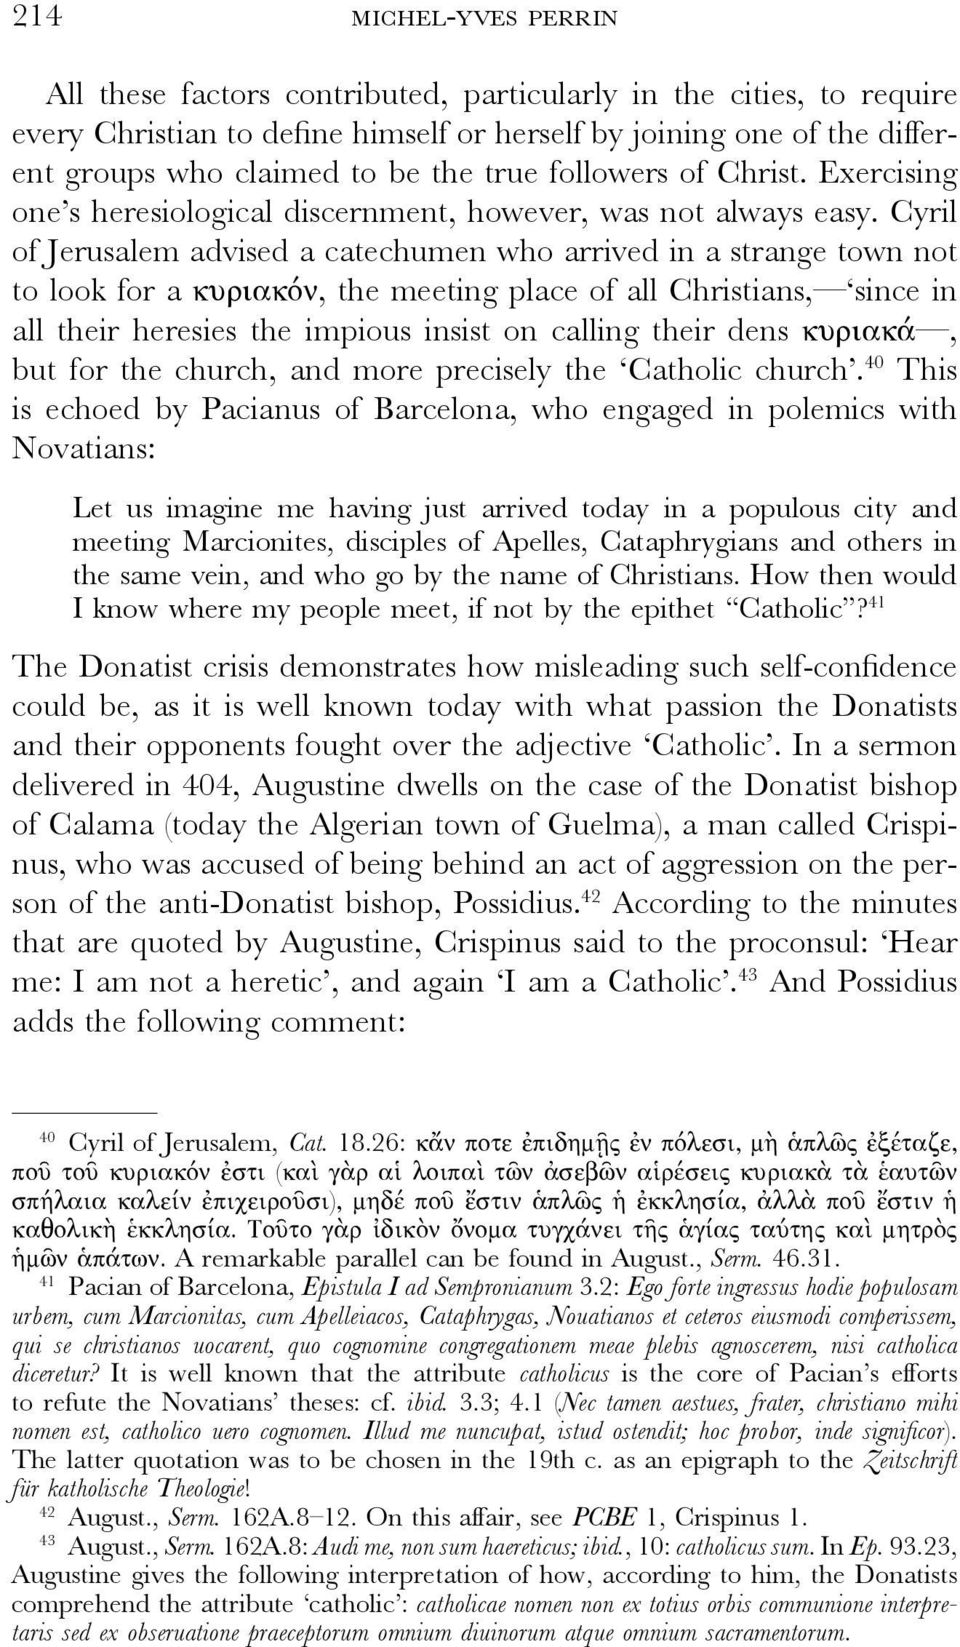 Cyril of Jerusalem advised a catechumen who arrived in a strange town not to look for a κυριακόν, the meeting place of all Christians, since in all their heresies the impious insist on calling their